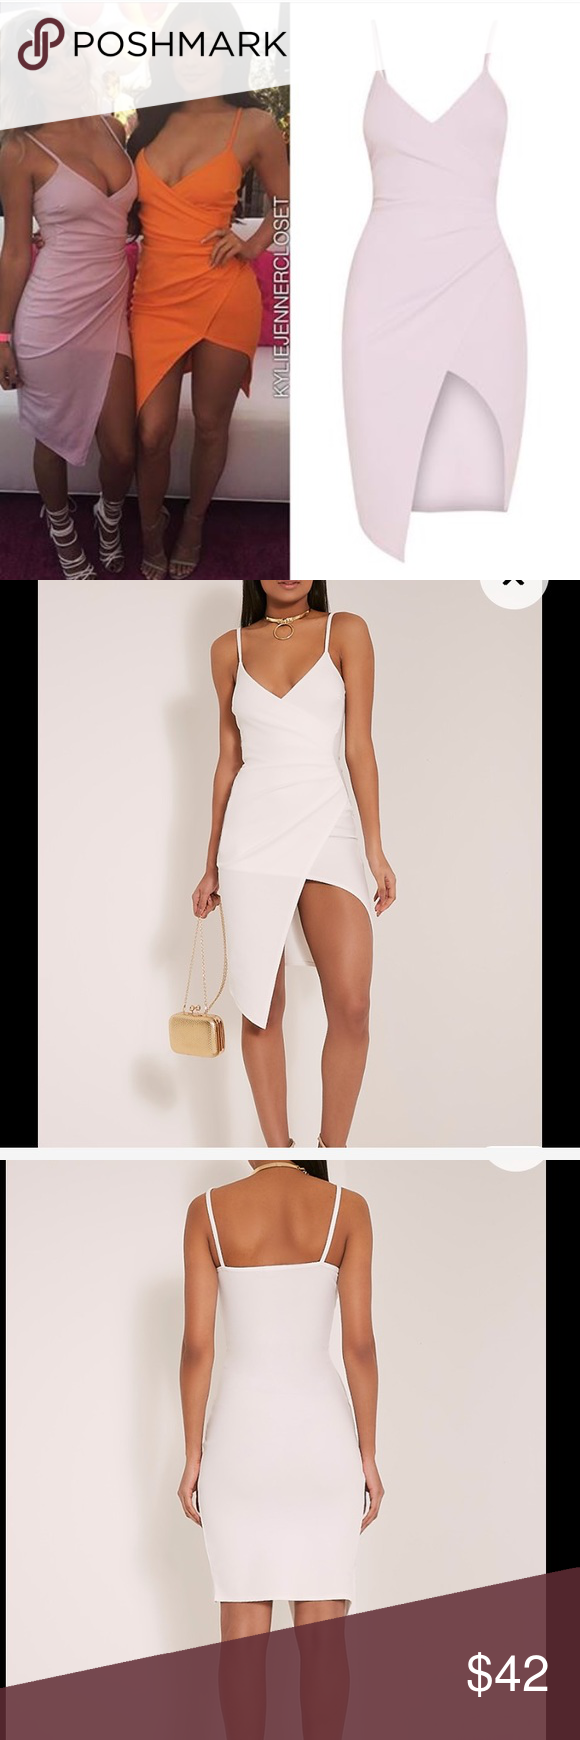 NWT Kylie Jenner Wrap Dress This dress is NWT & has never